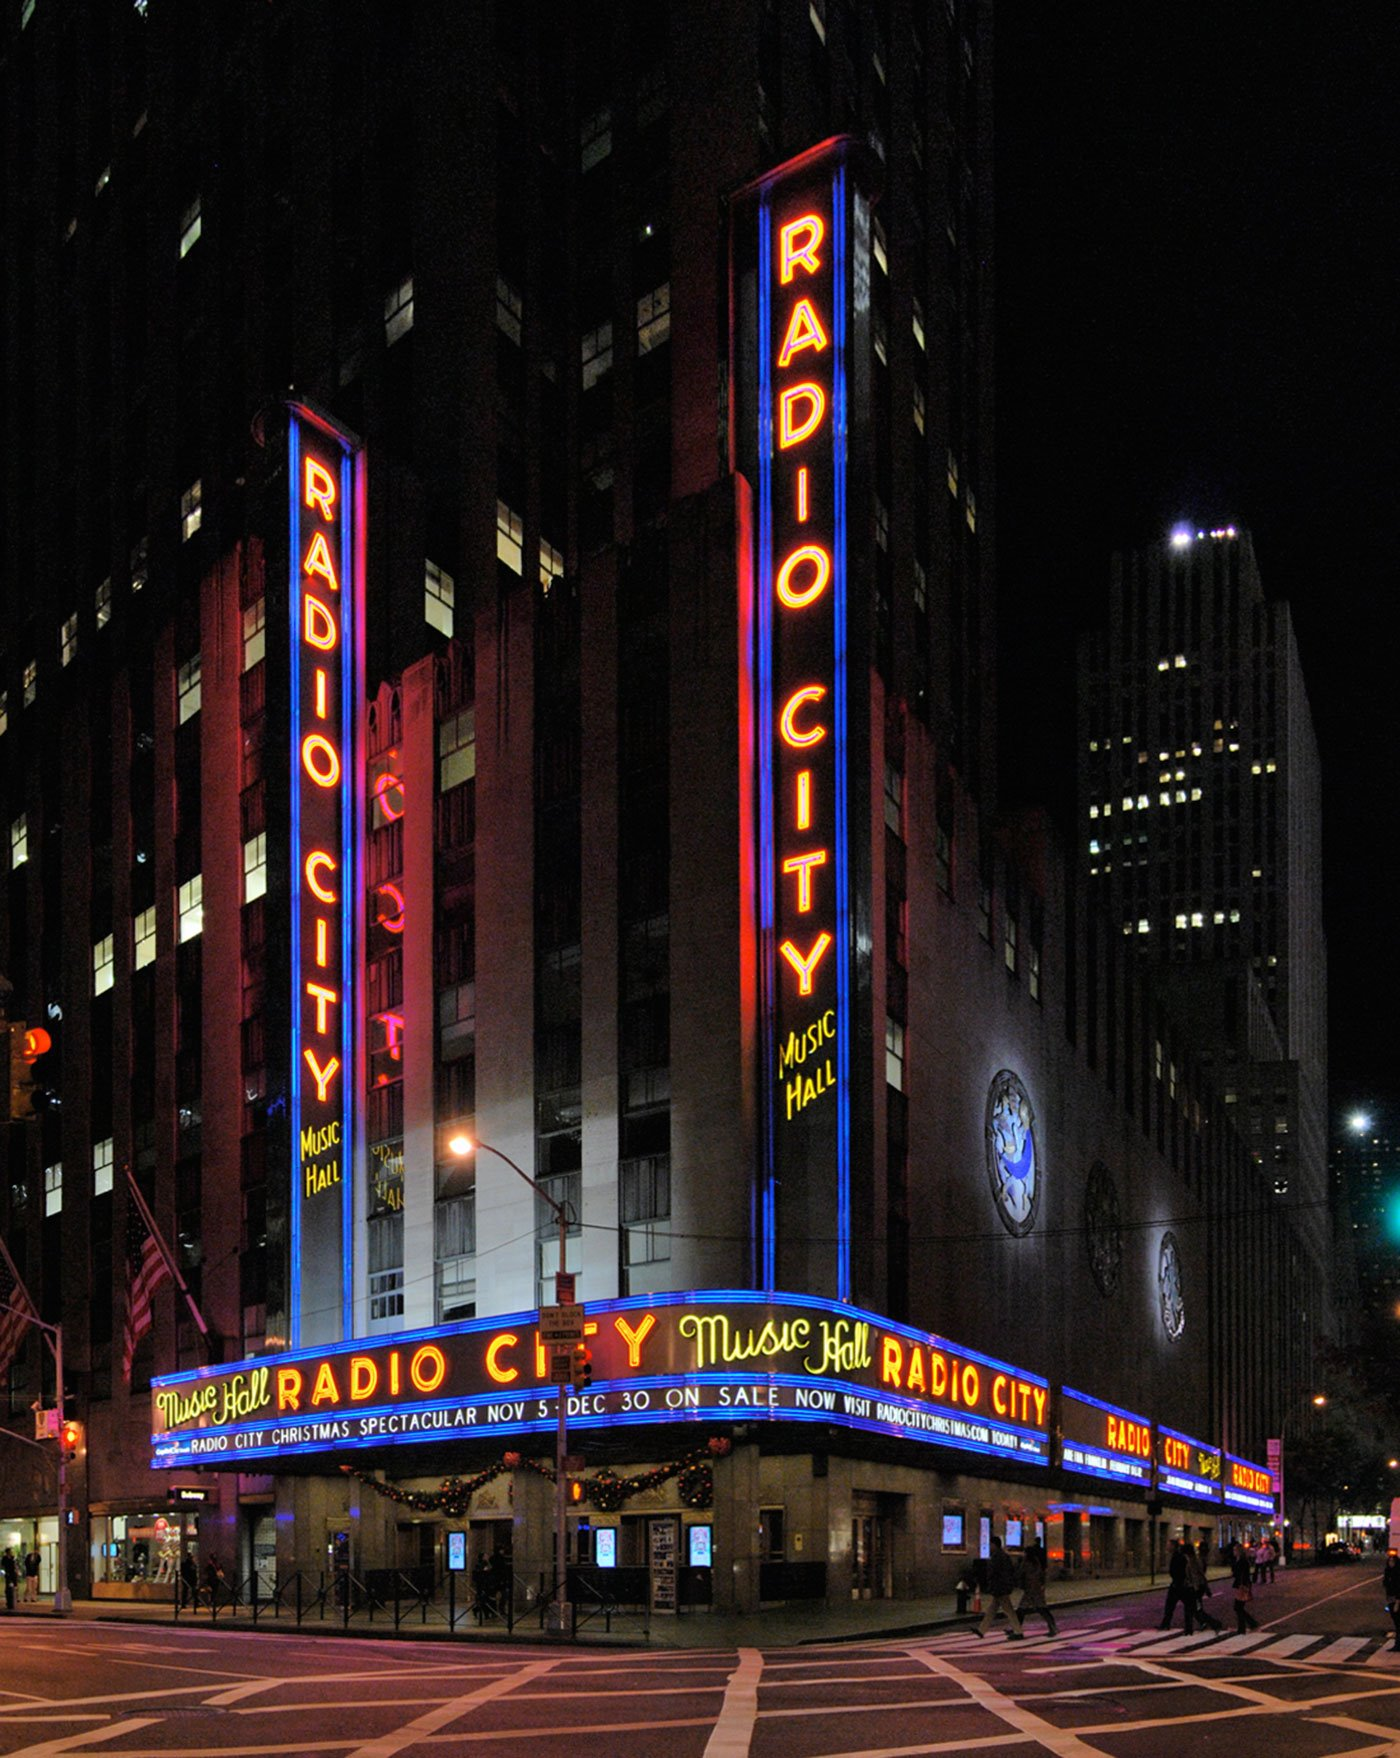 1Radio City Music Hall Panorama. Radio City Music Hall